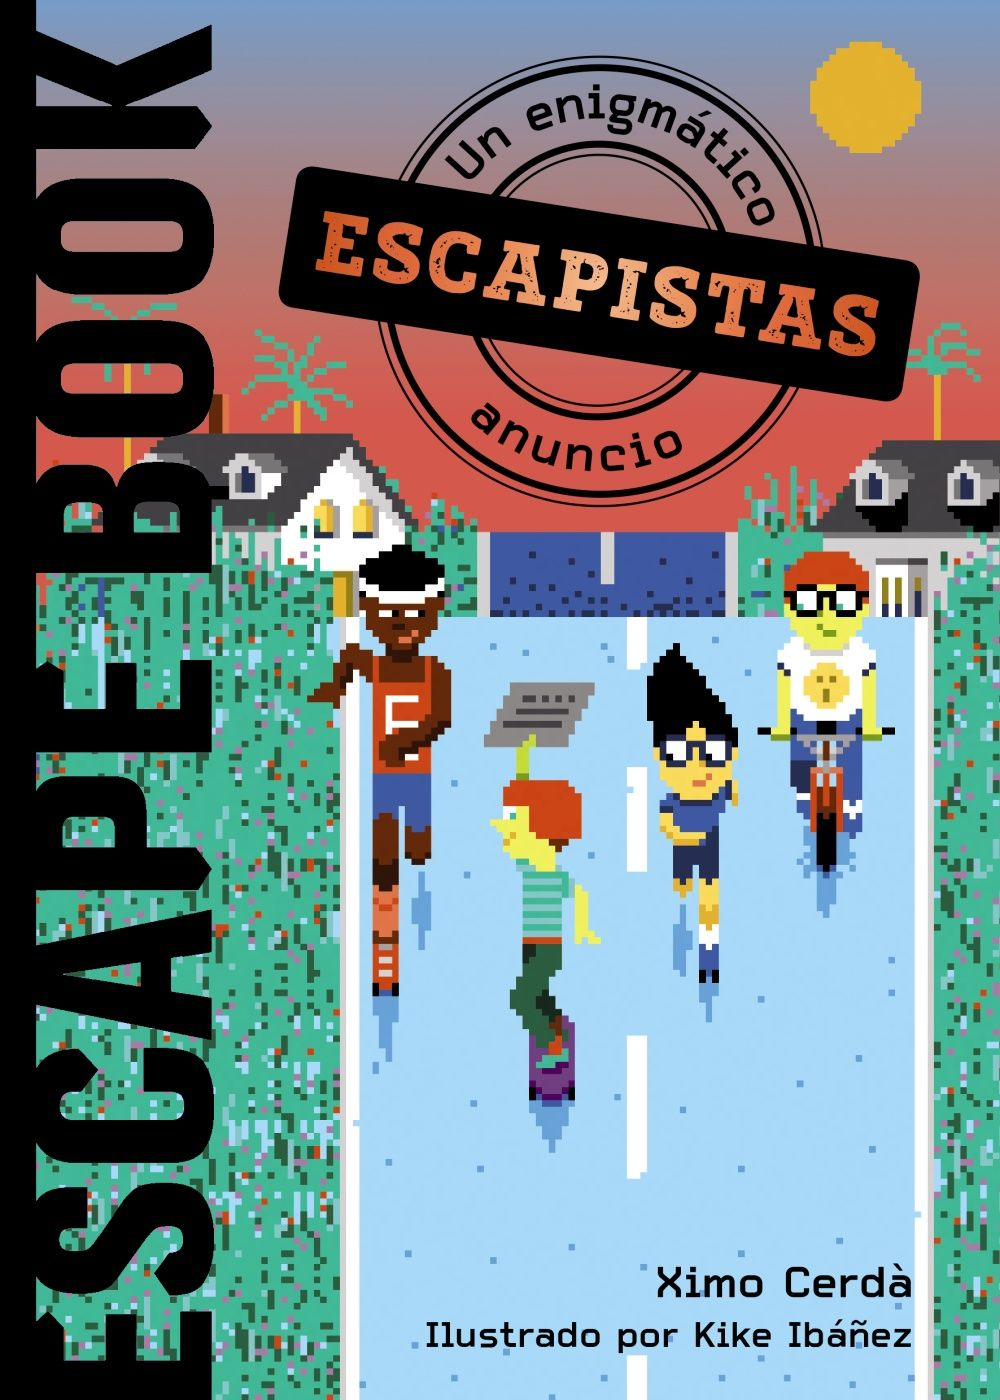 ESCAPE BOOK ESCAPISTAS UN ENIGMATICO ANUNCIO